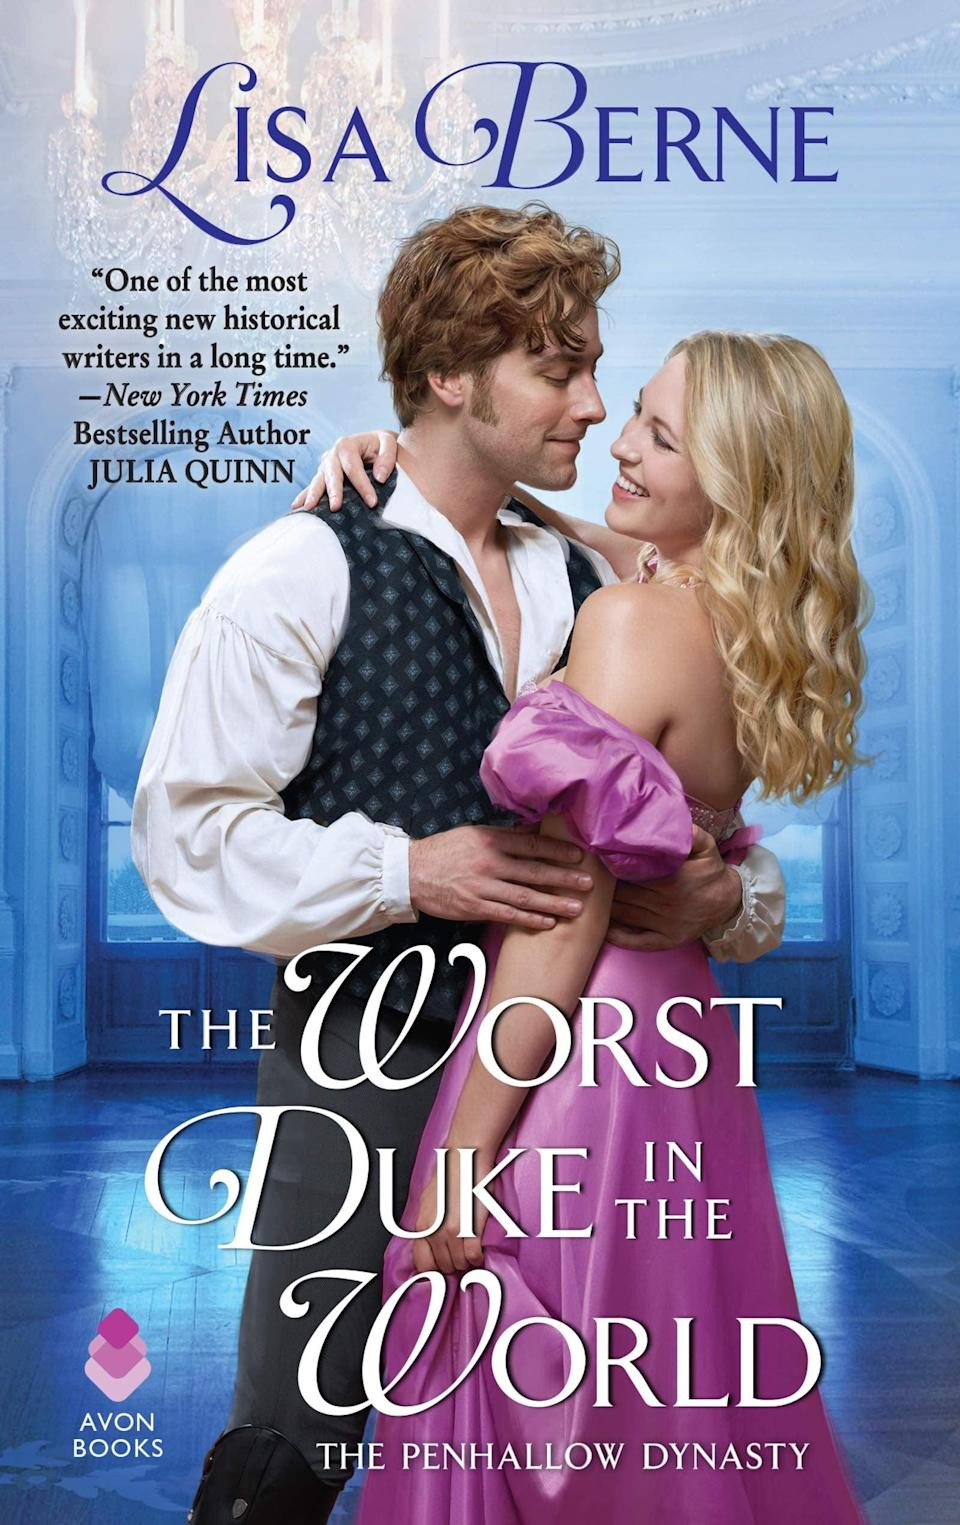 <p>Attention <strong>Bridgerton</strong> fans, if you're ready to delve deeper into the world of historical romances, <span><strong>The Worst Duke in the World</strong></span> by Lisa Berne is a fun place to start. The book follows Anthony Farr, the Duke of Radcliffe, who has vowed never to remarry. However, when the very eligible and genuinely loving Jane Kent befriends his 8-year-old son his resolve begins to crack. </p> <p><em>Out Jan. 12</em></p>